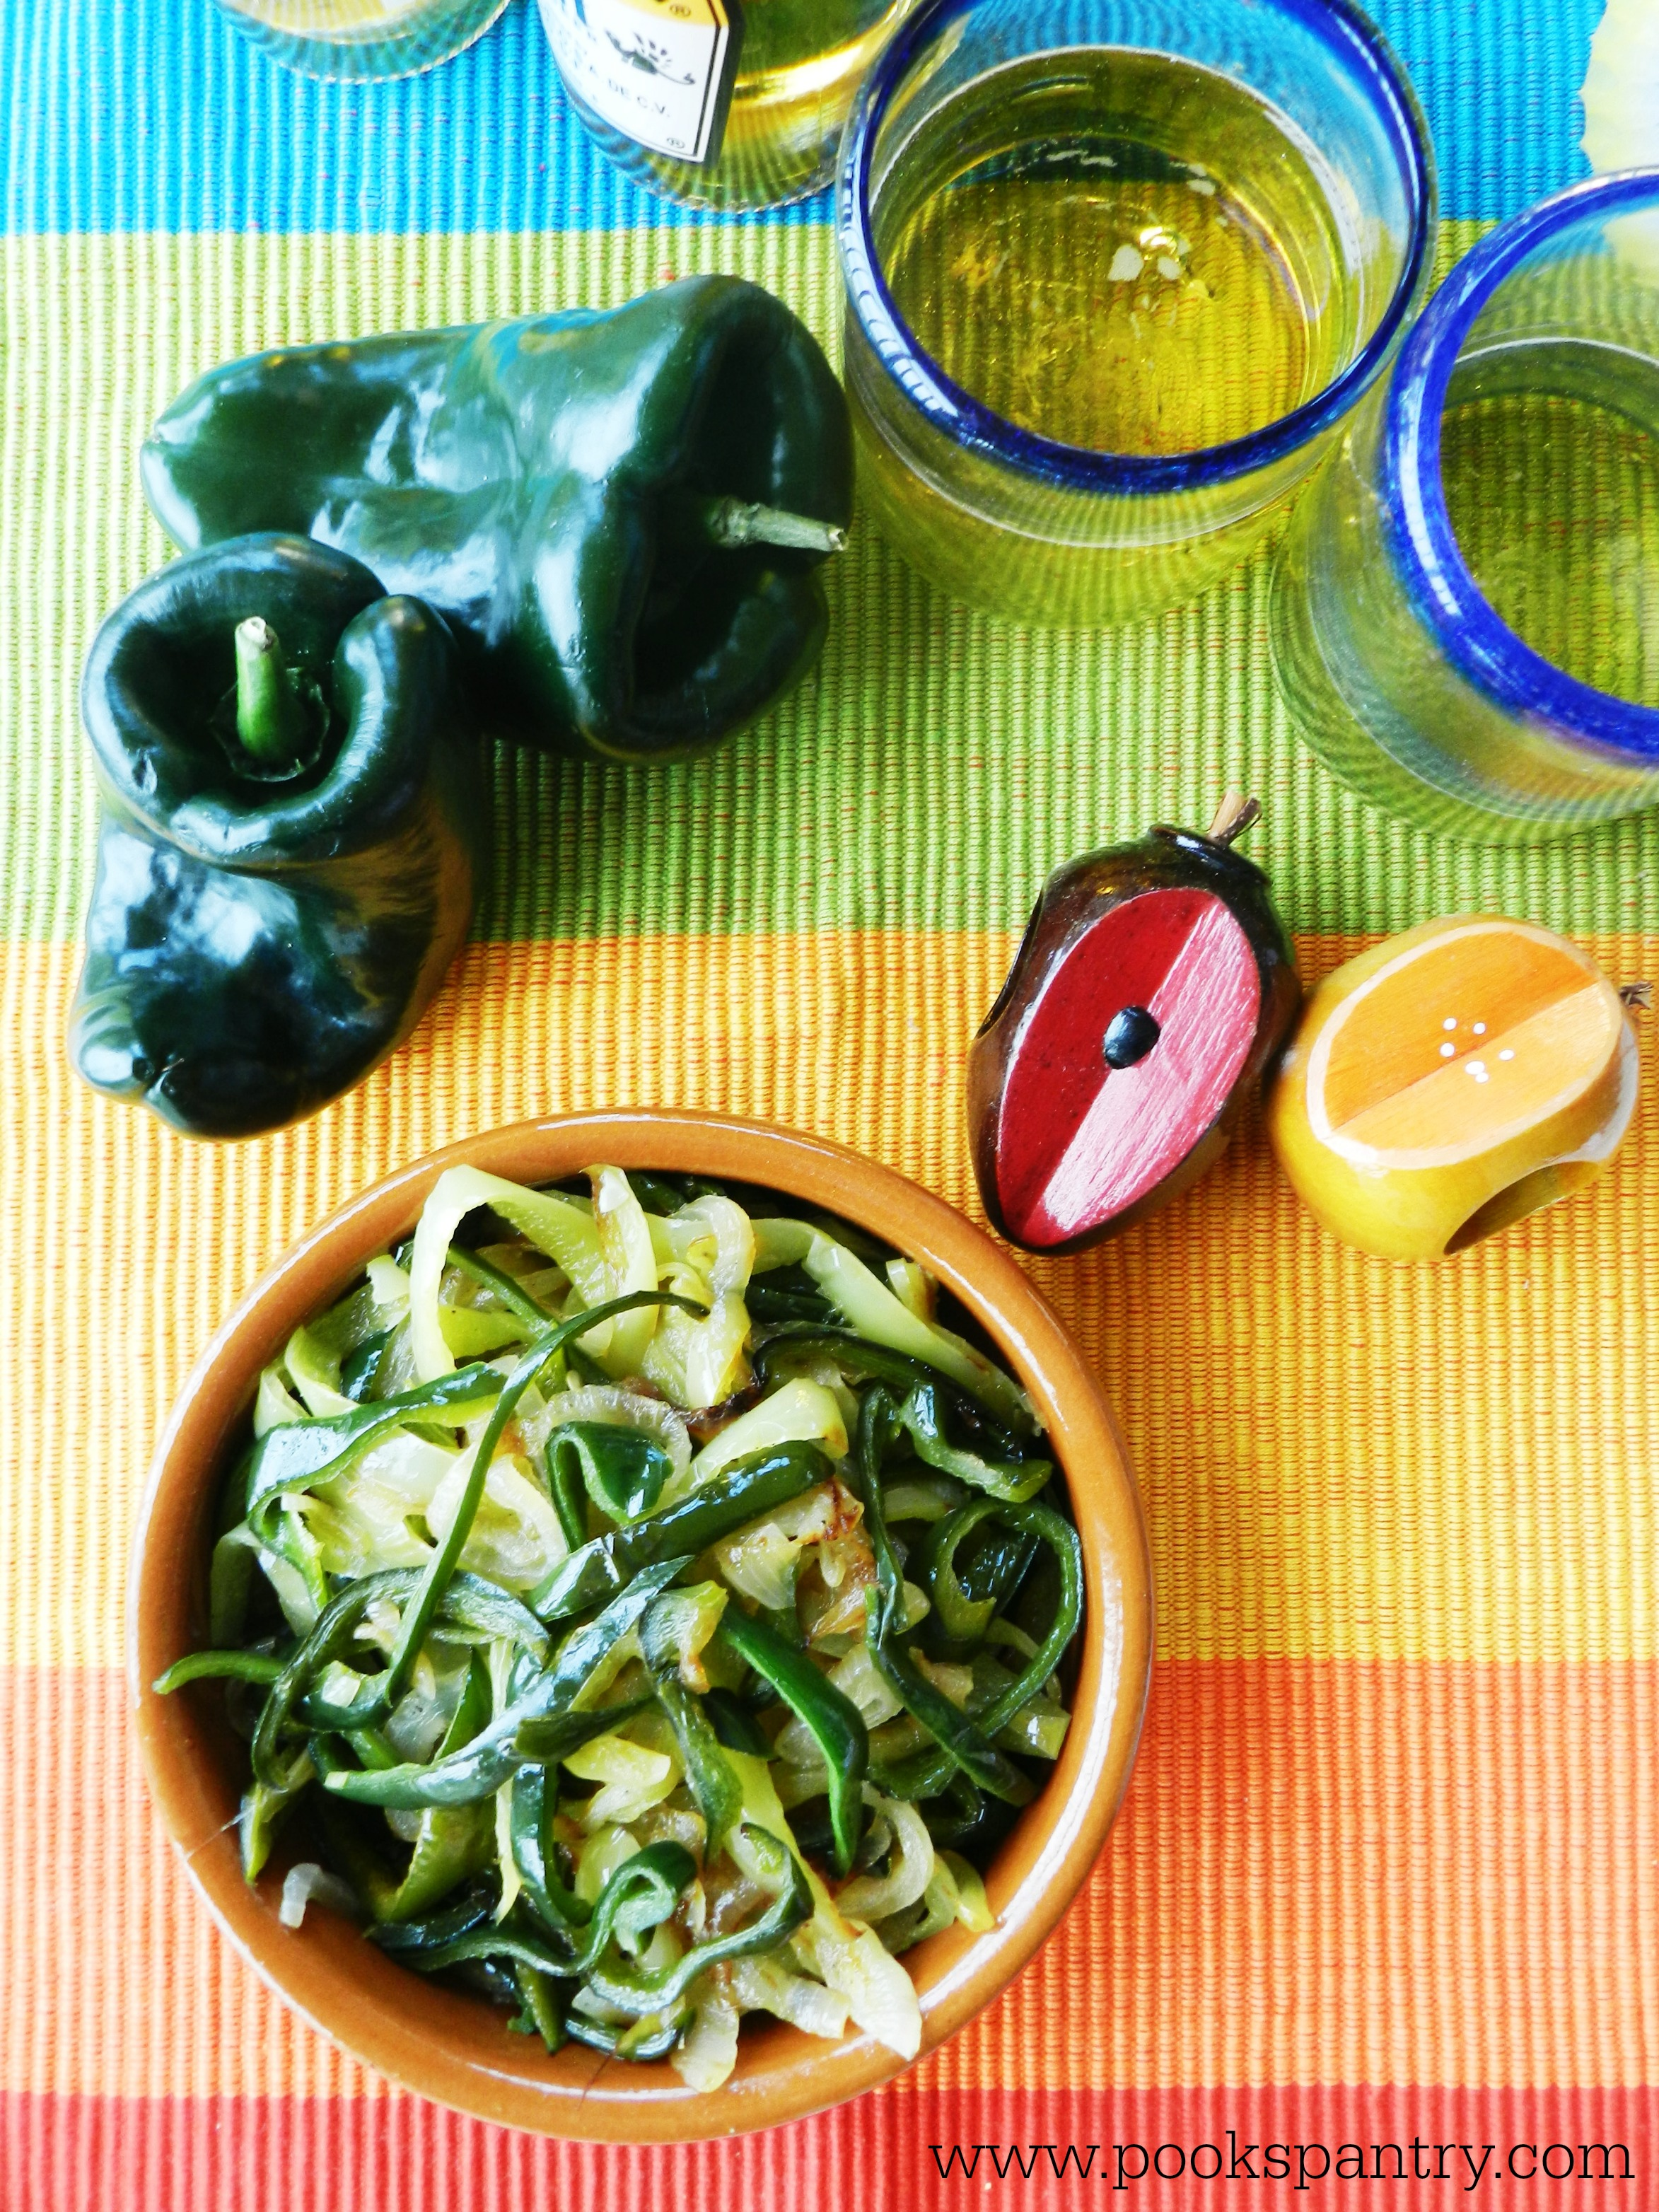 Rajas- Poblano Peppers sauteed with Onions and Garlic